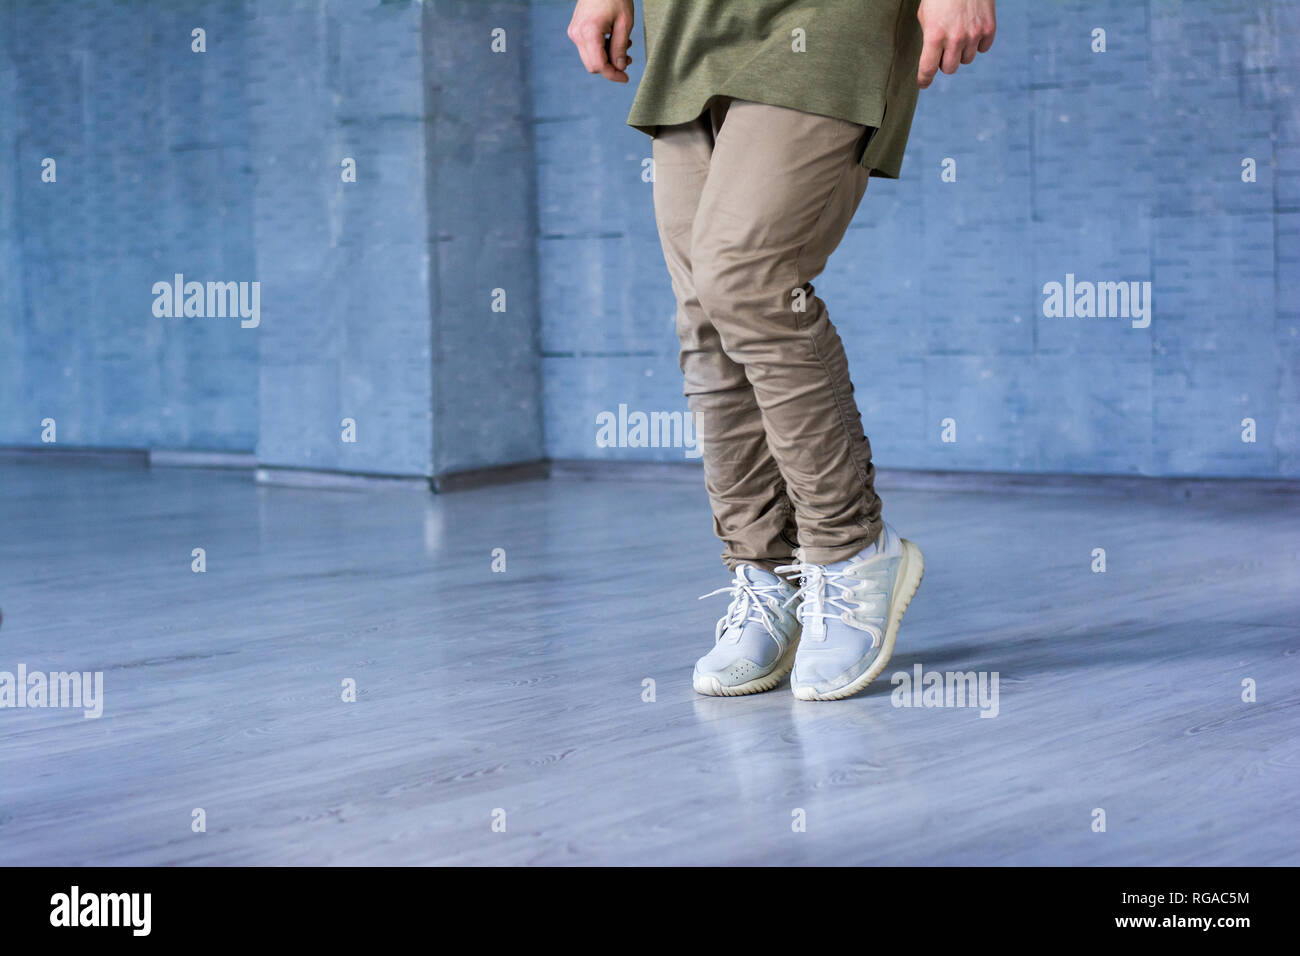 Dancer on grey background, cropped image. Hip-hop dancer wearing grey cotton trousers and sneakers on grey background. Sreet style dancing. - Stock Image